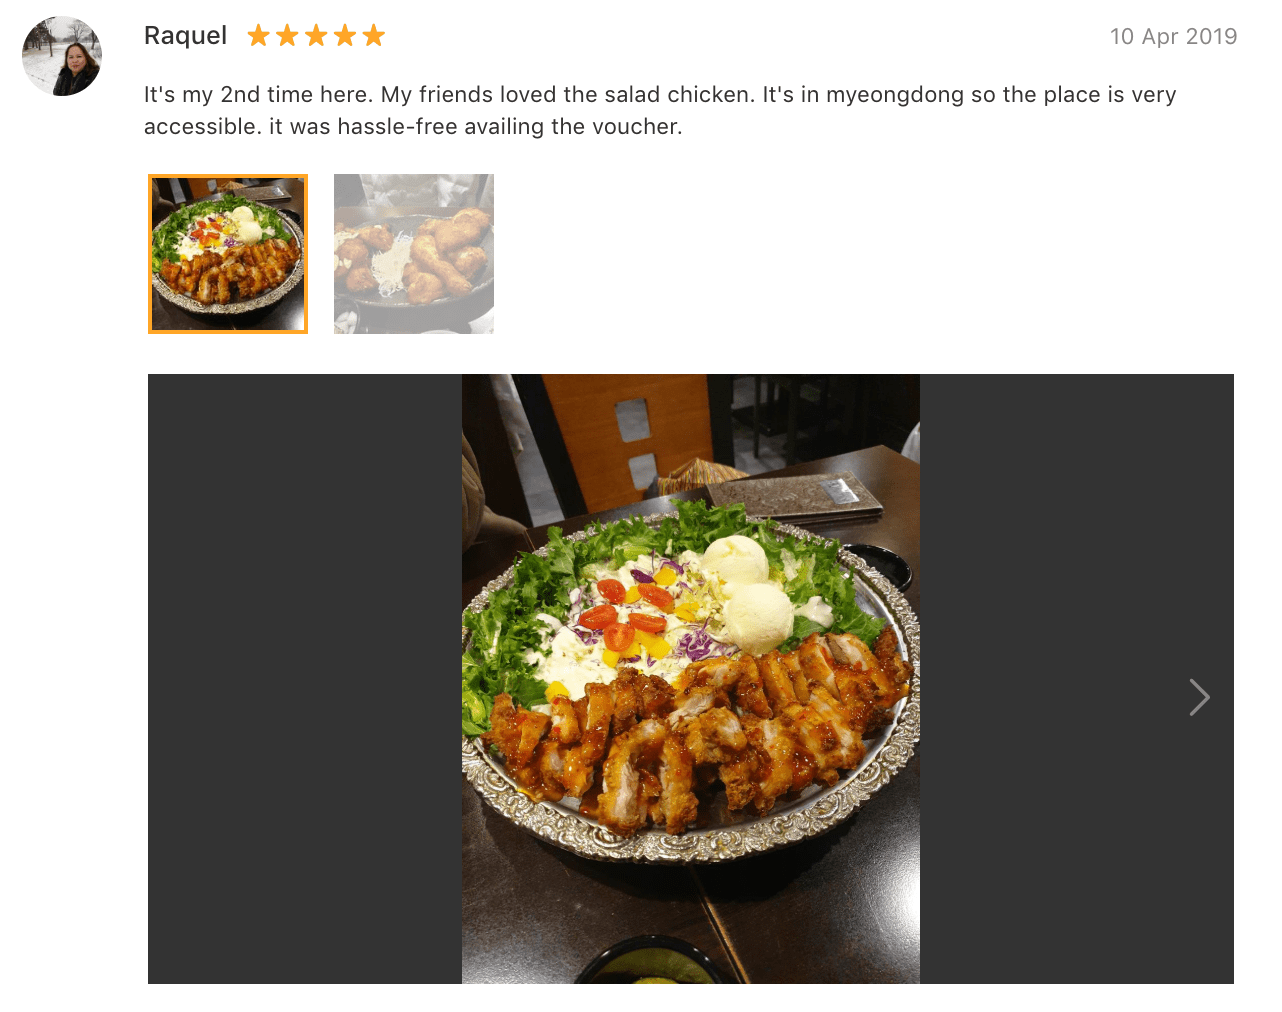 'It's my 2nd time here. My friends loved the salad chicken. It's in myeongdong so the place is very accessible. It was hassle-free availing the voucher.' - Review: Oppa Dak Korean Fried Chicken Restaurant in Myeongdong